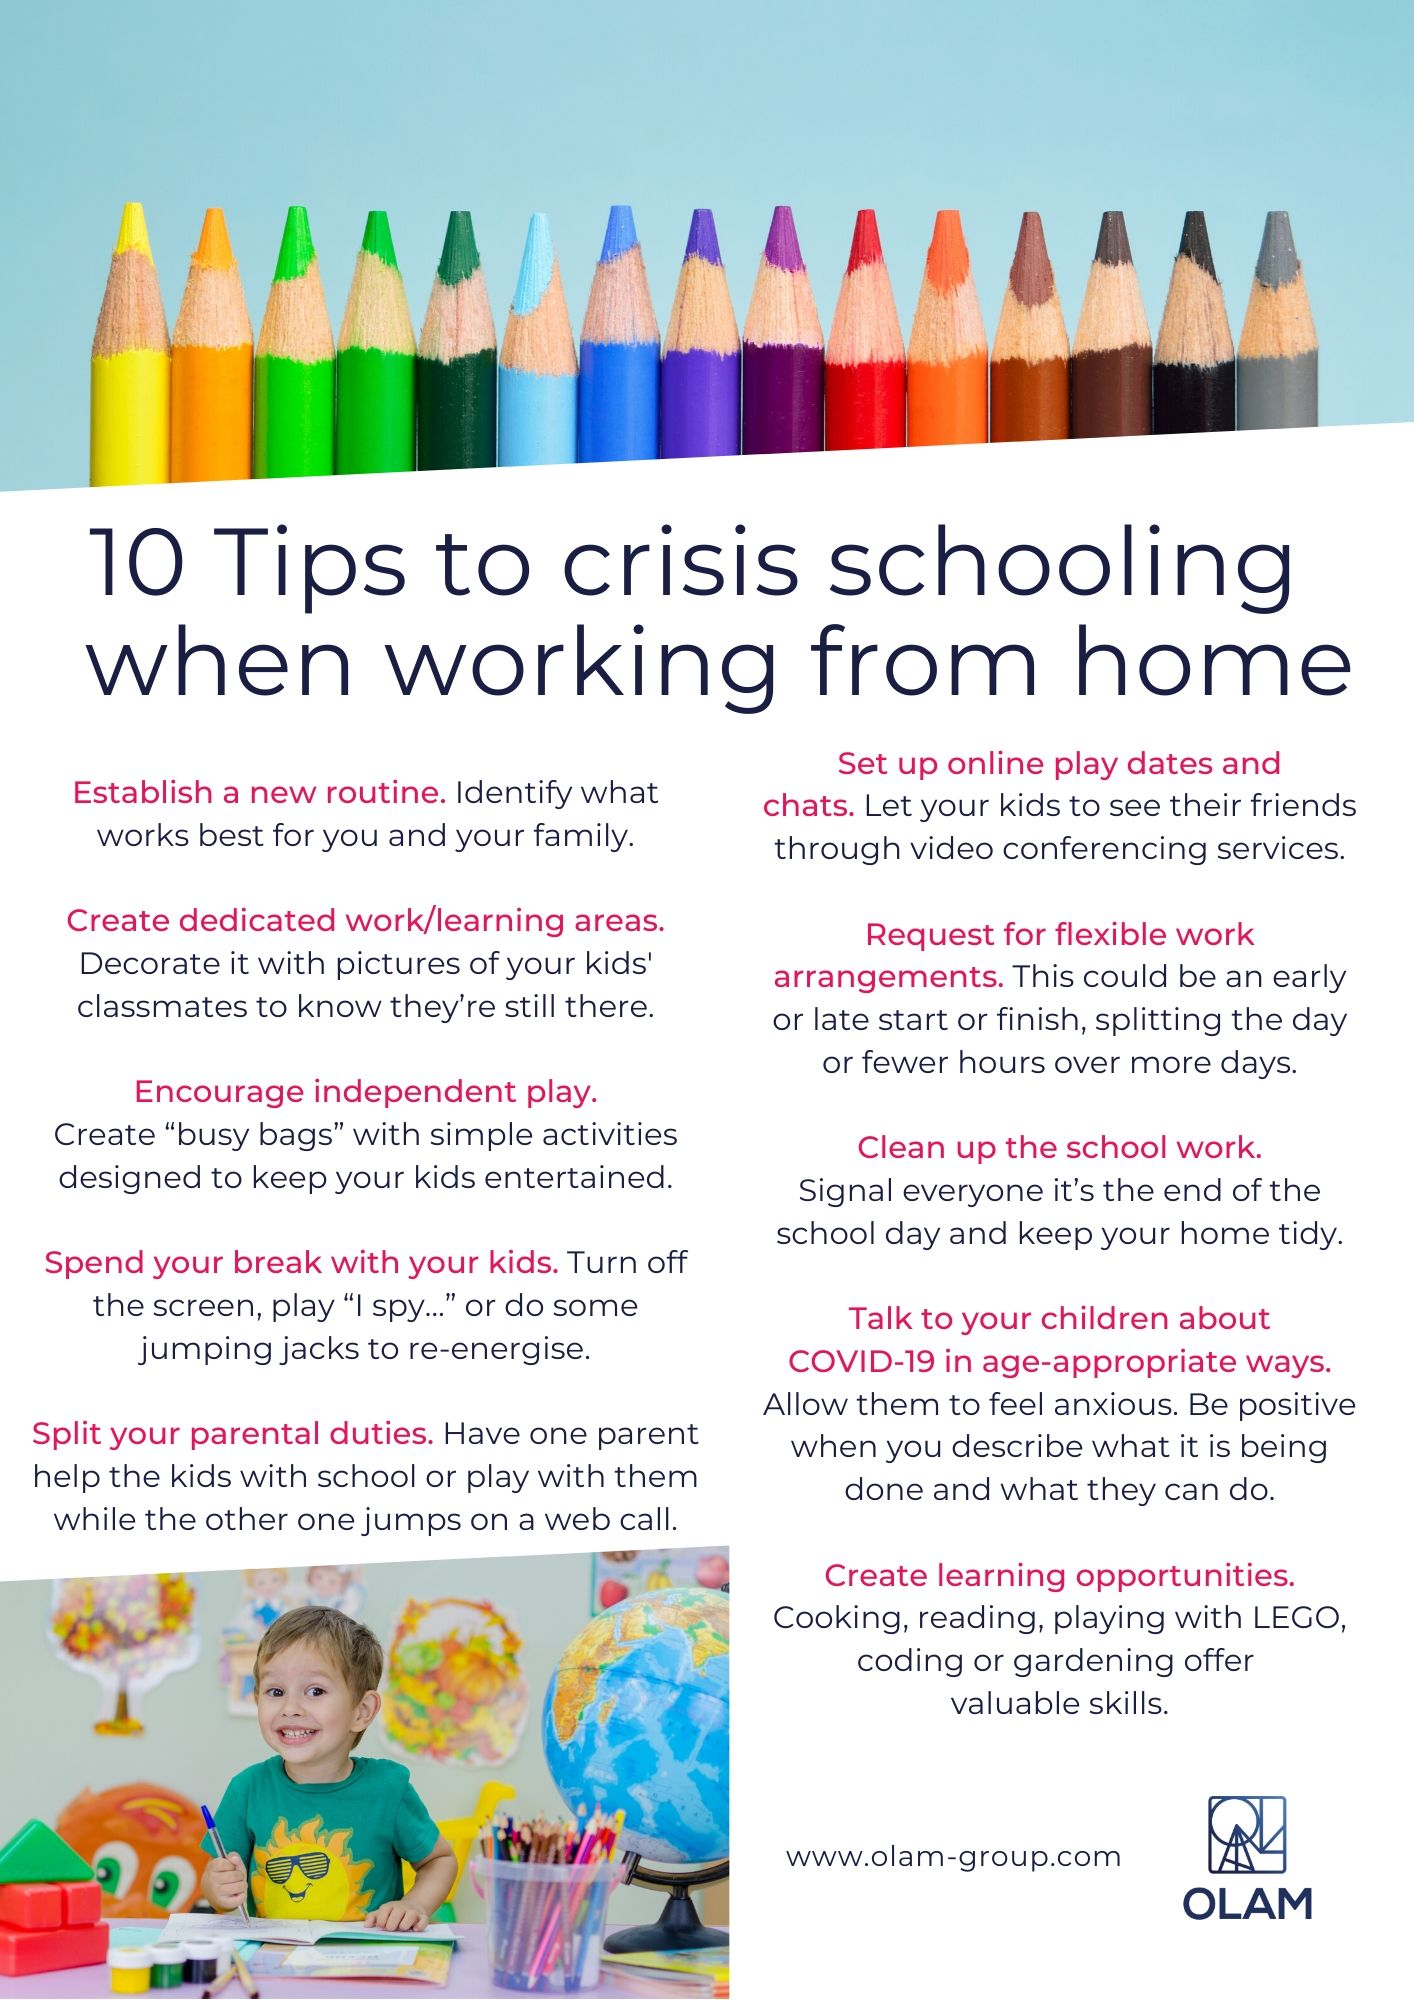 10 Tips to crisis schooling when working from home